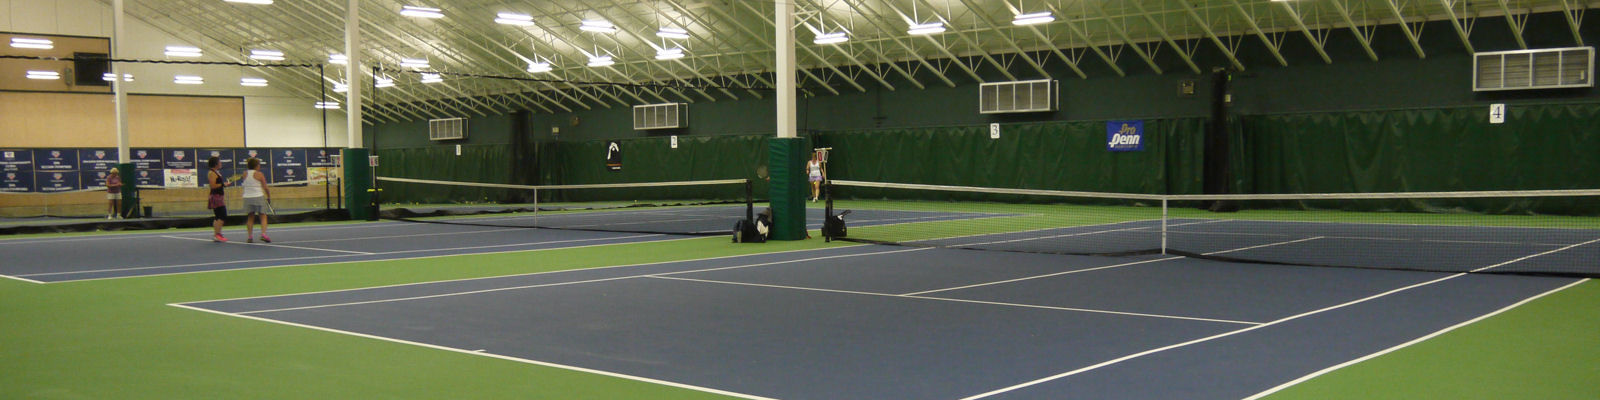 Robinswood Tennis Center - inside